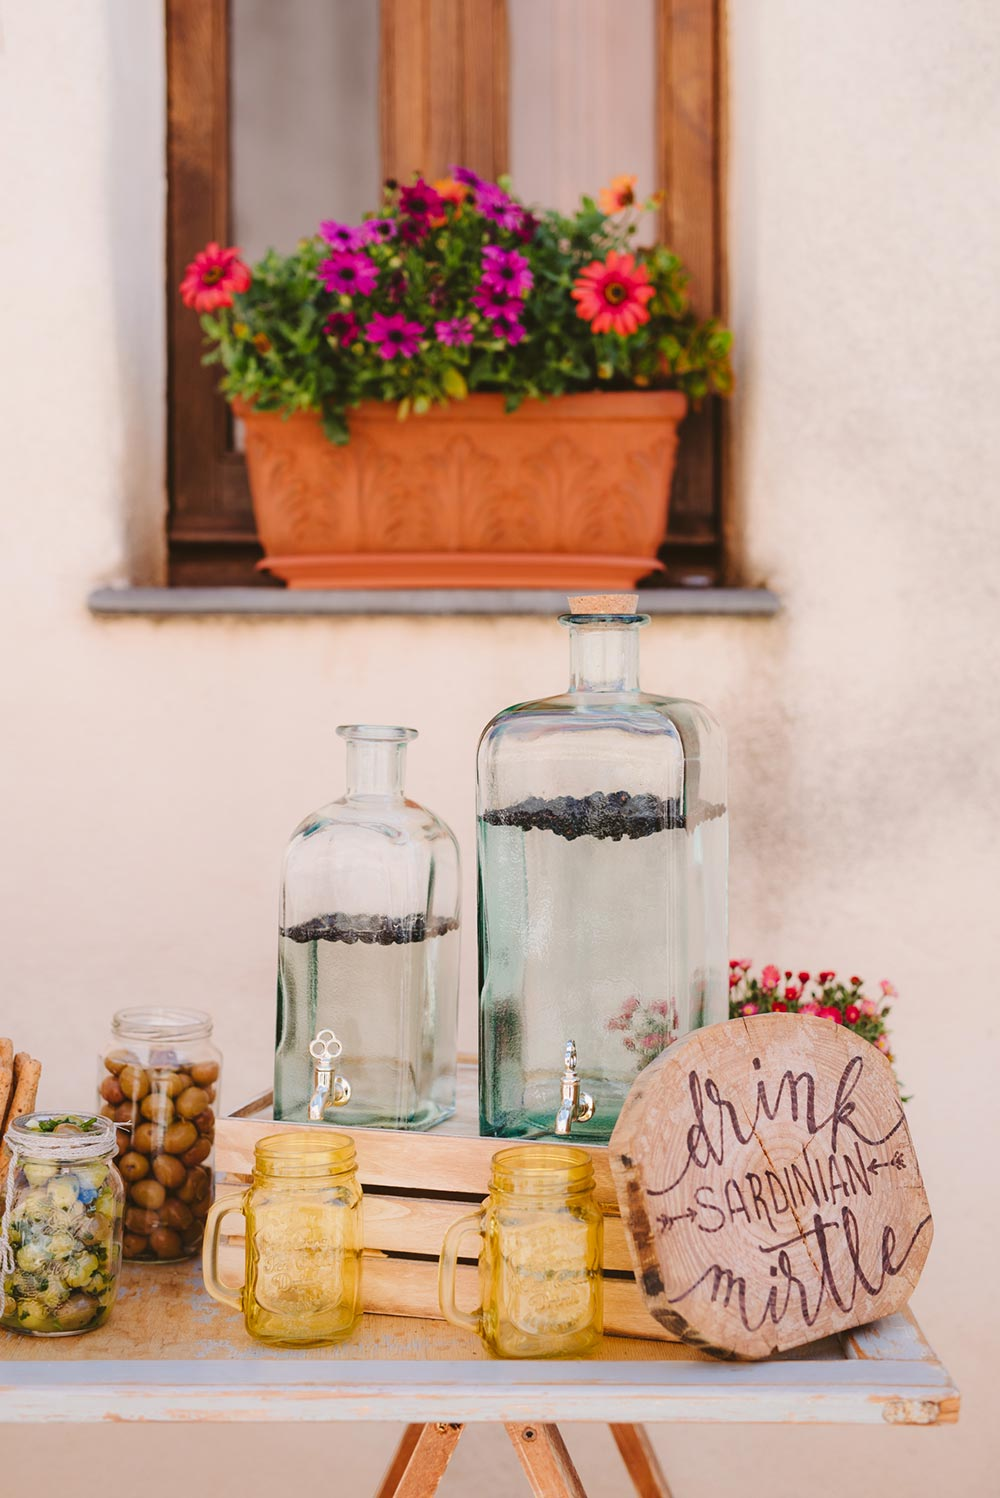 rustic chic dessert display Italian wedding traditions